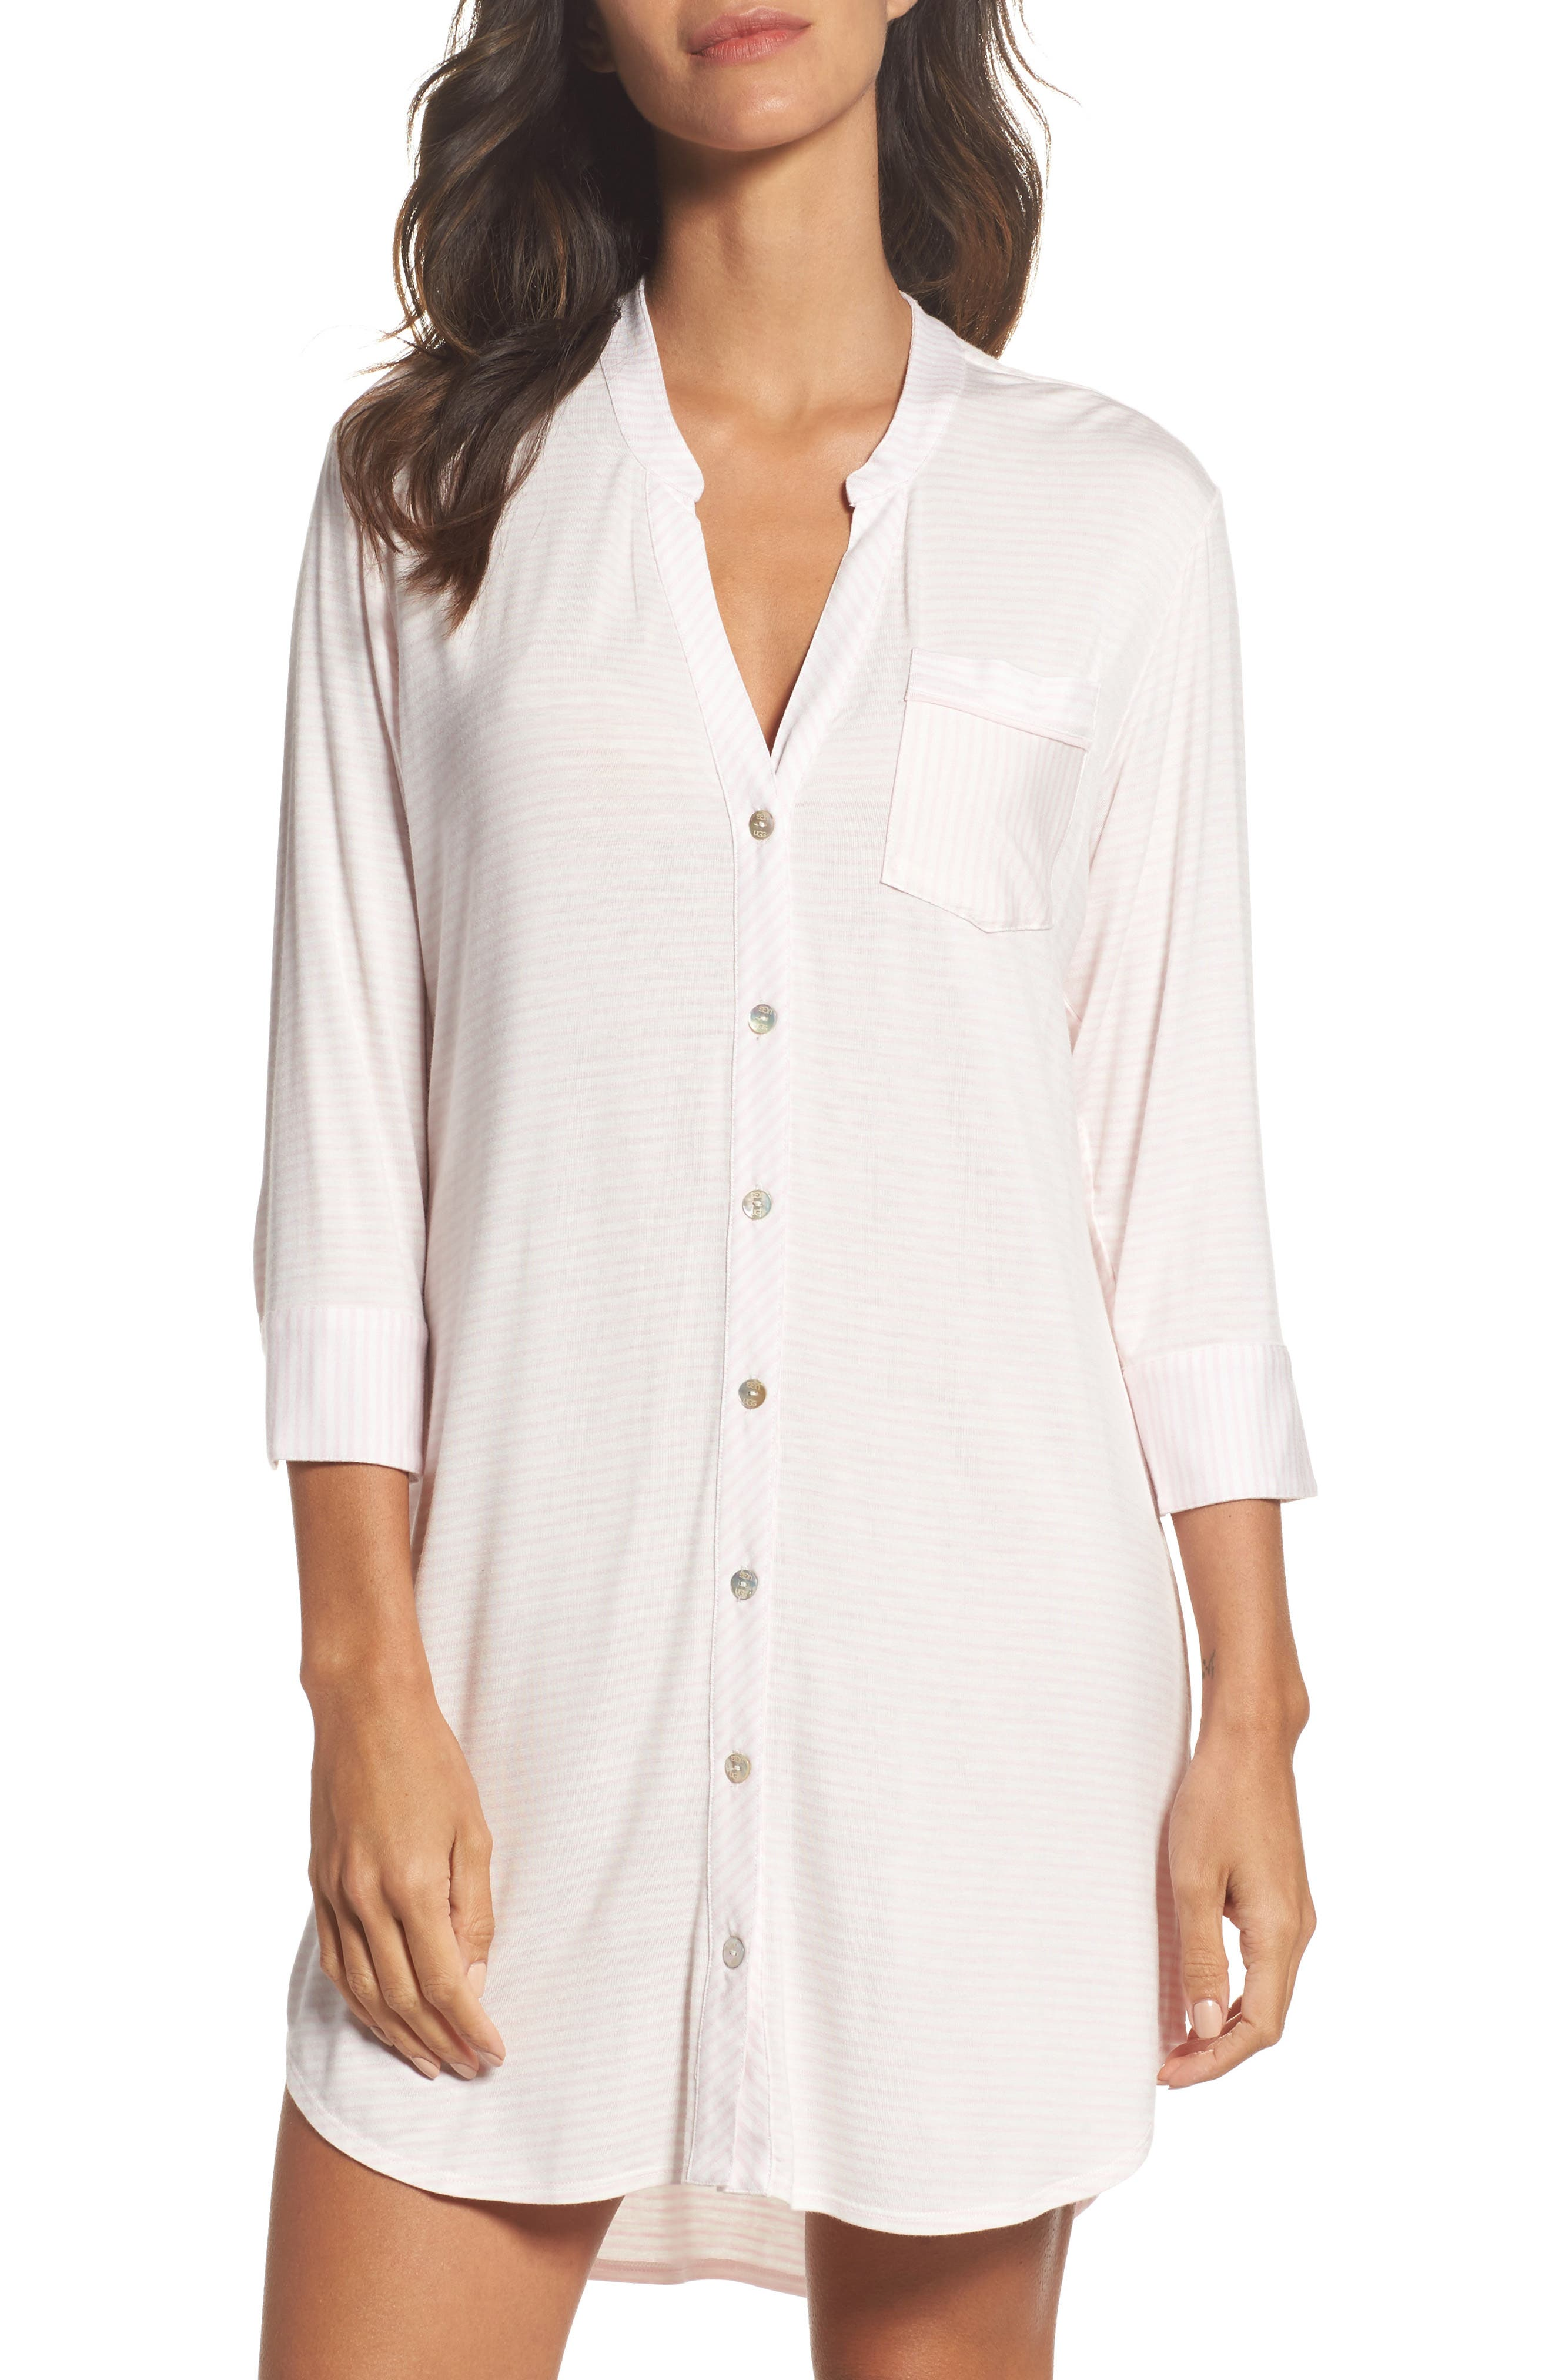 Vivian Sleep Shirt,                         Main,                         color, Seashell Pink/ White